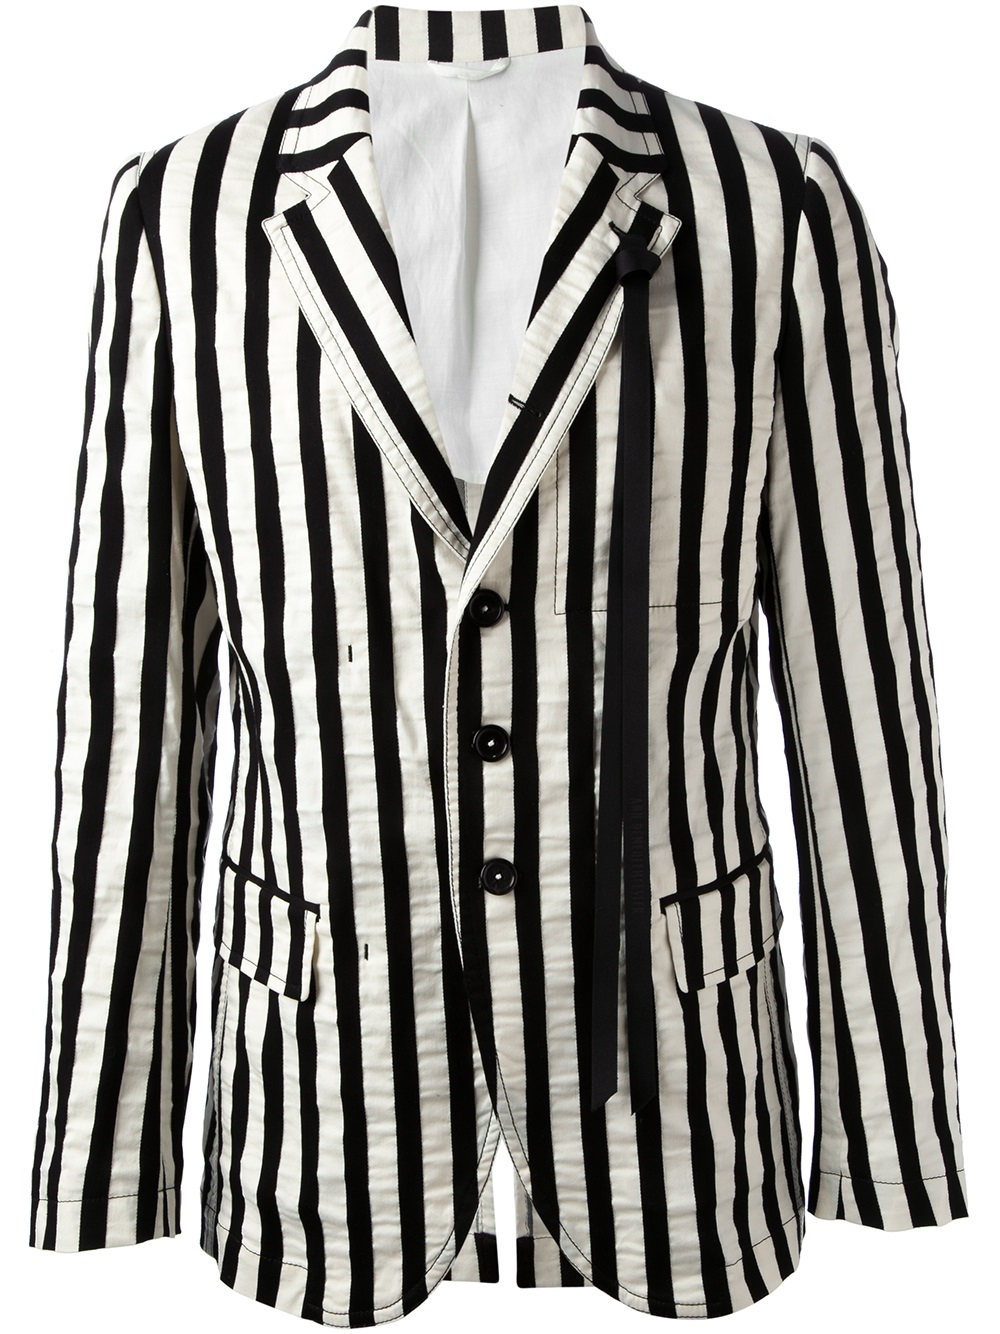 Find great deals on eBay for black and white striped jacket. Shop with confidence.